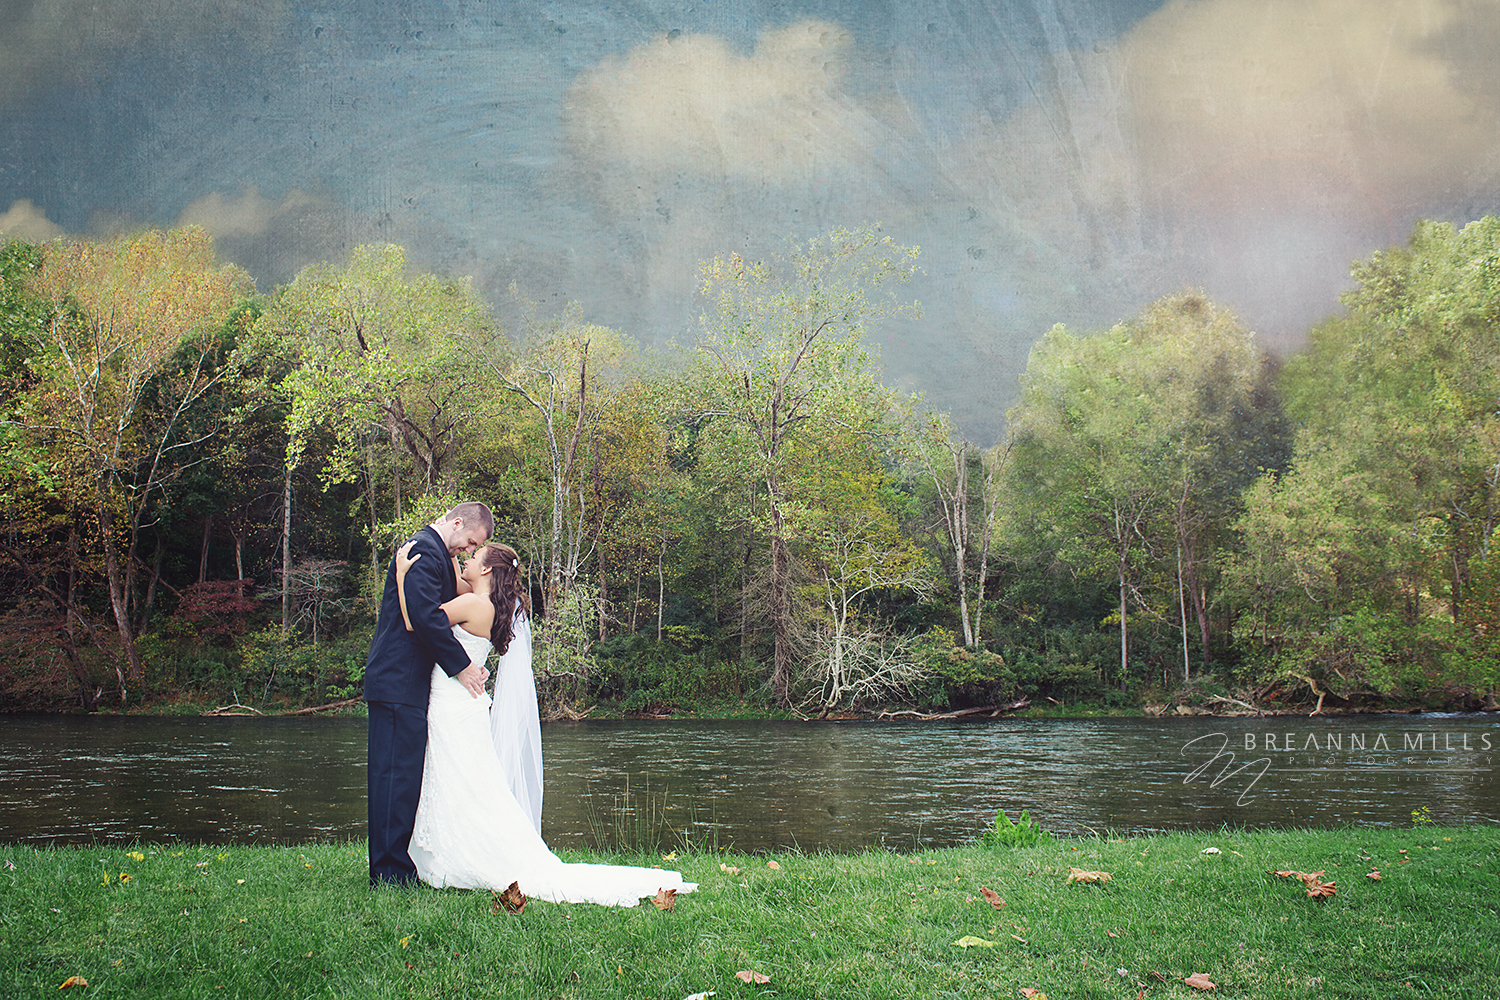 Johnson City Wedding Photographer, Breanna Mills Photography shoots creative bride and groom portraits on wedding day.